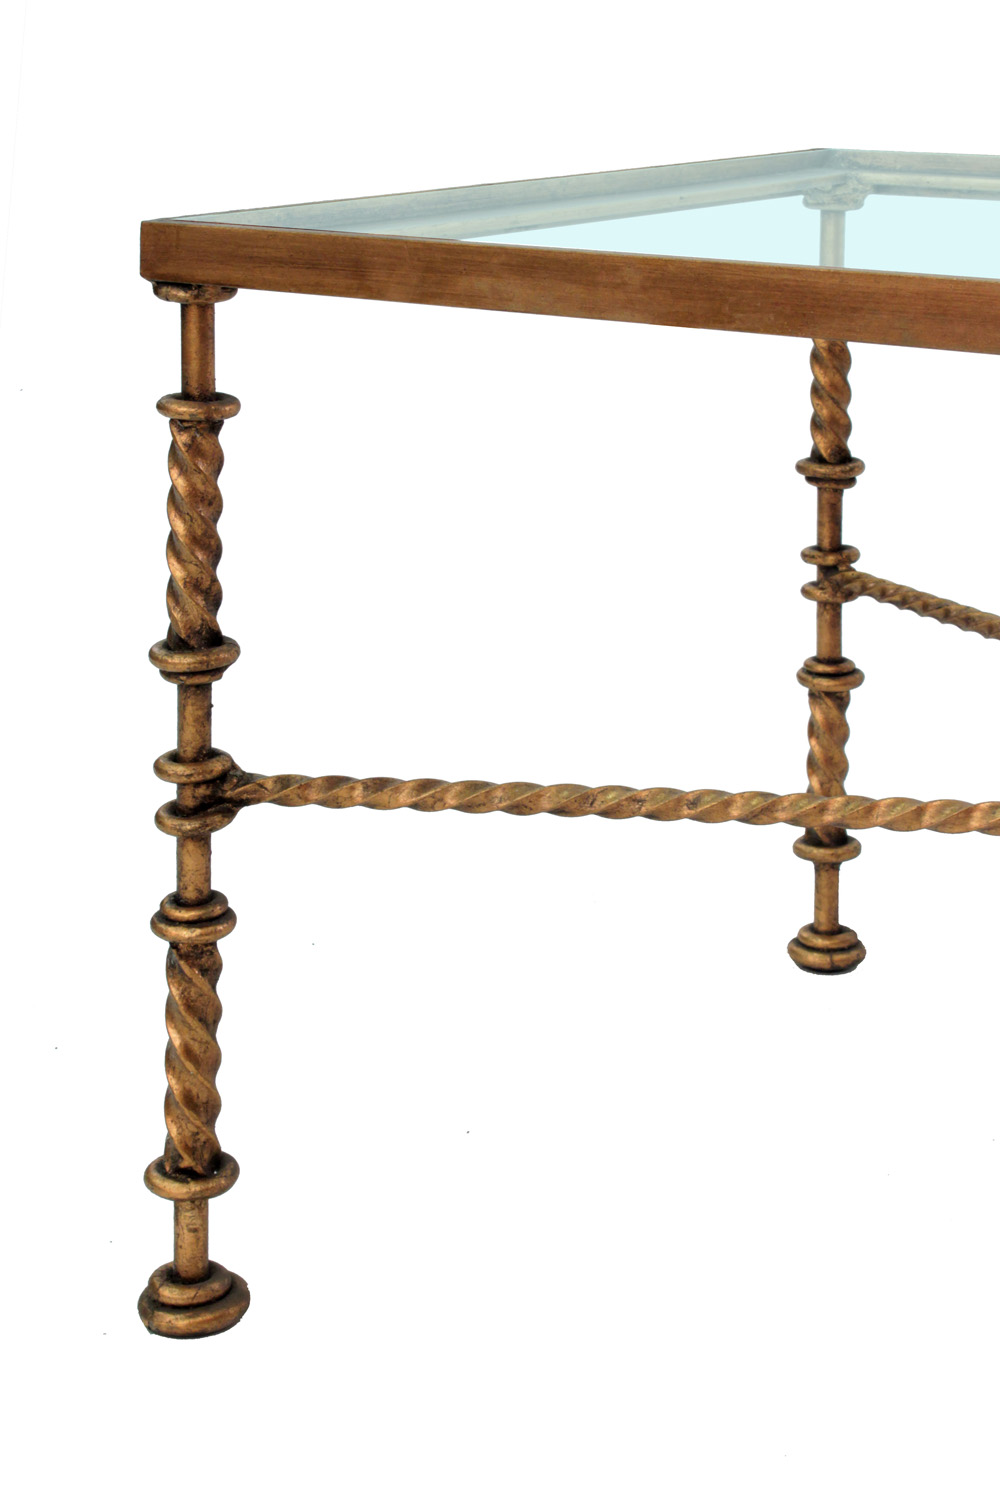 70s 75 twisted bronze stretchers coffeetable353 detail5 hires.jpg